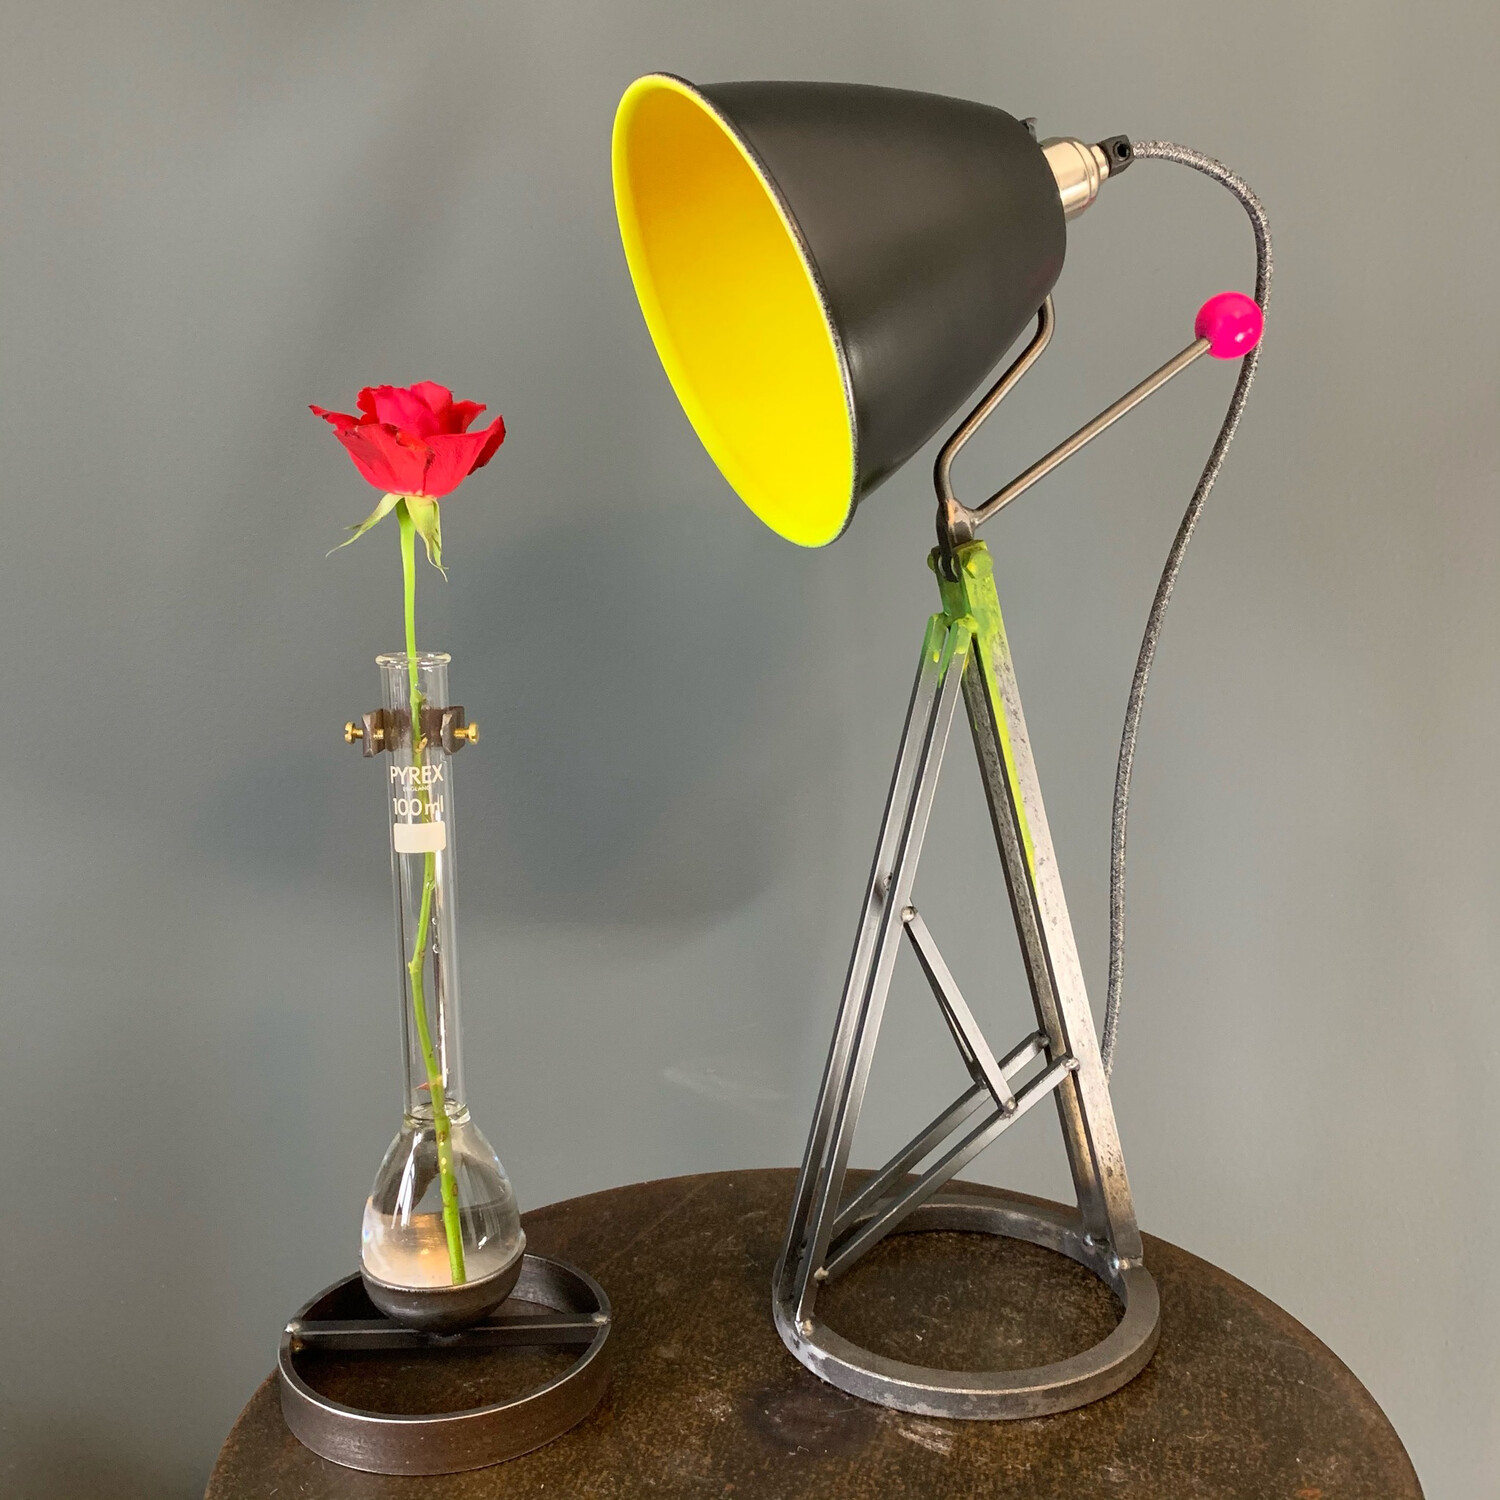 Colour Pop Industrial Desk Lamp